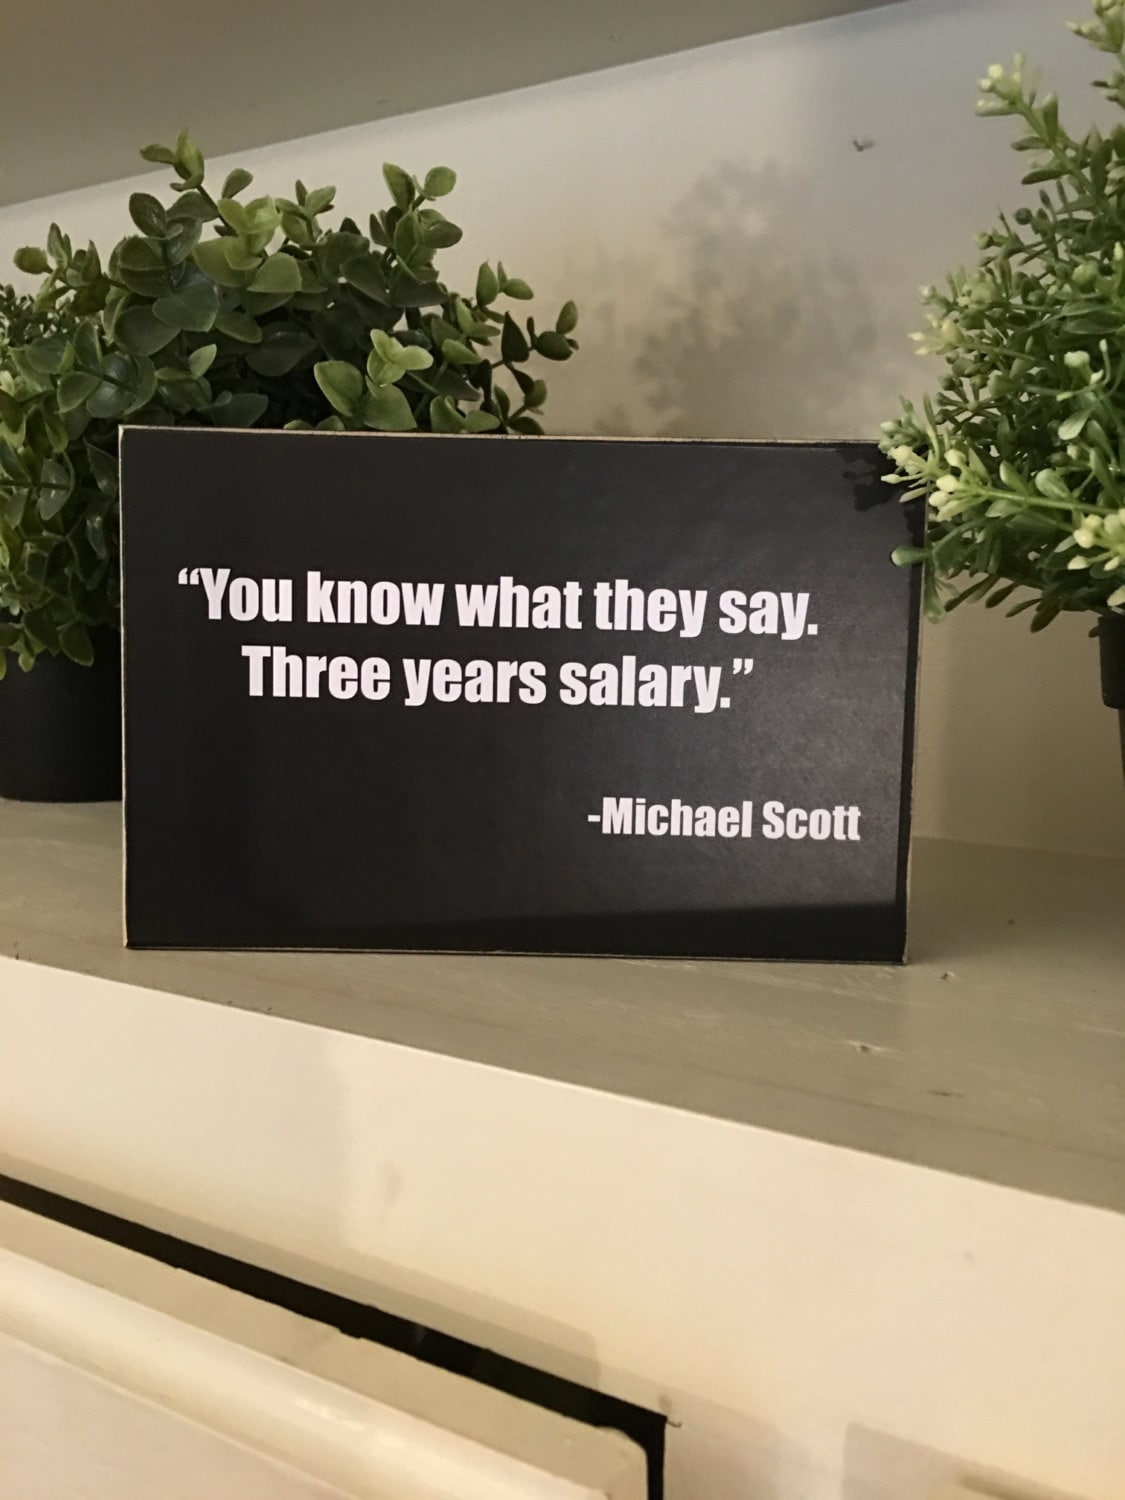 You Know What They Say Quotes You Know What They Say 3 Years Salary Michael Scott Quotethe